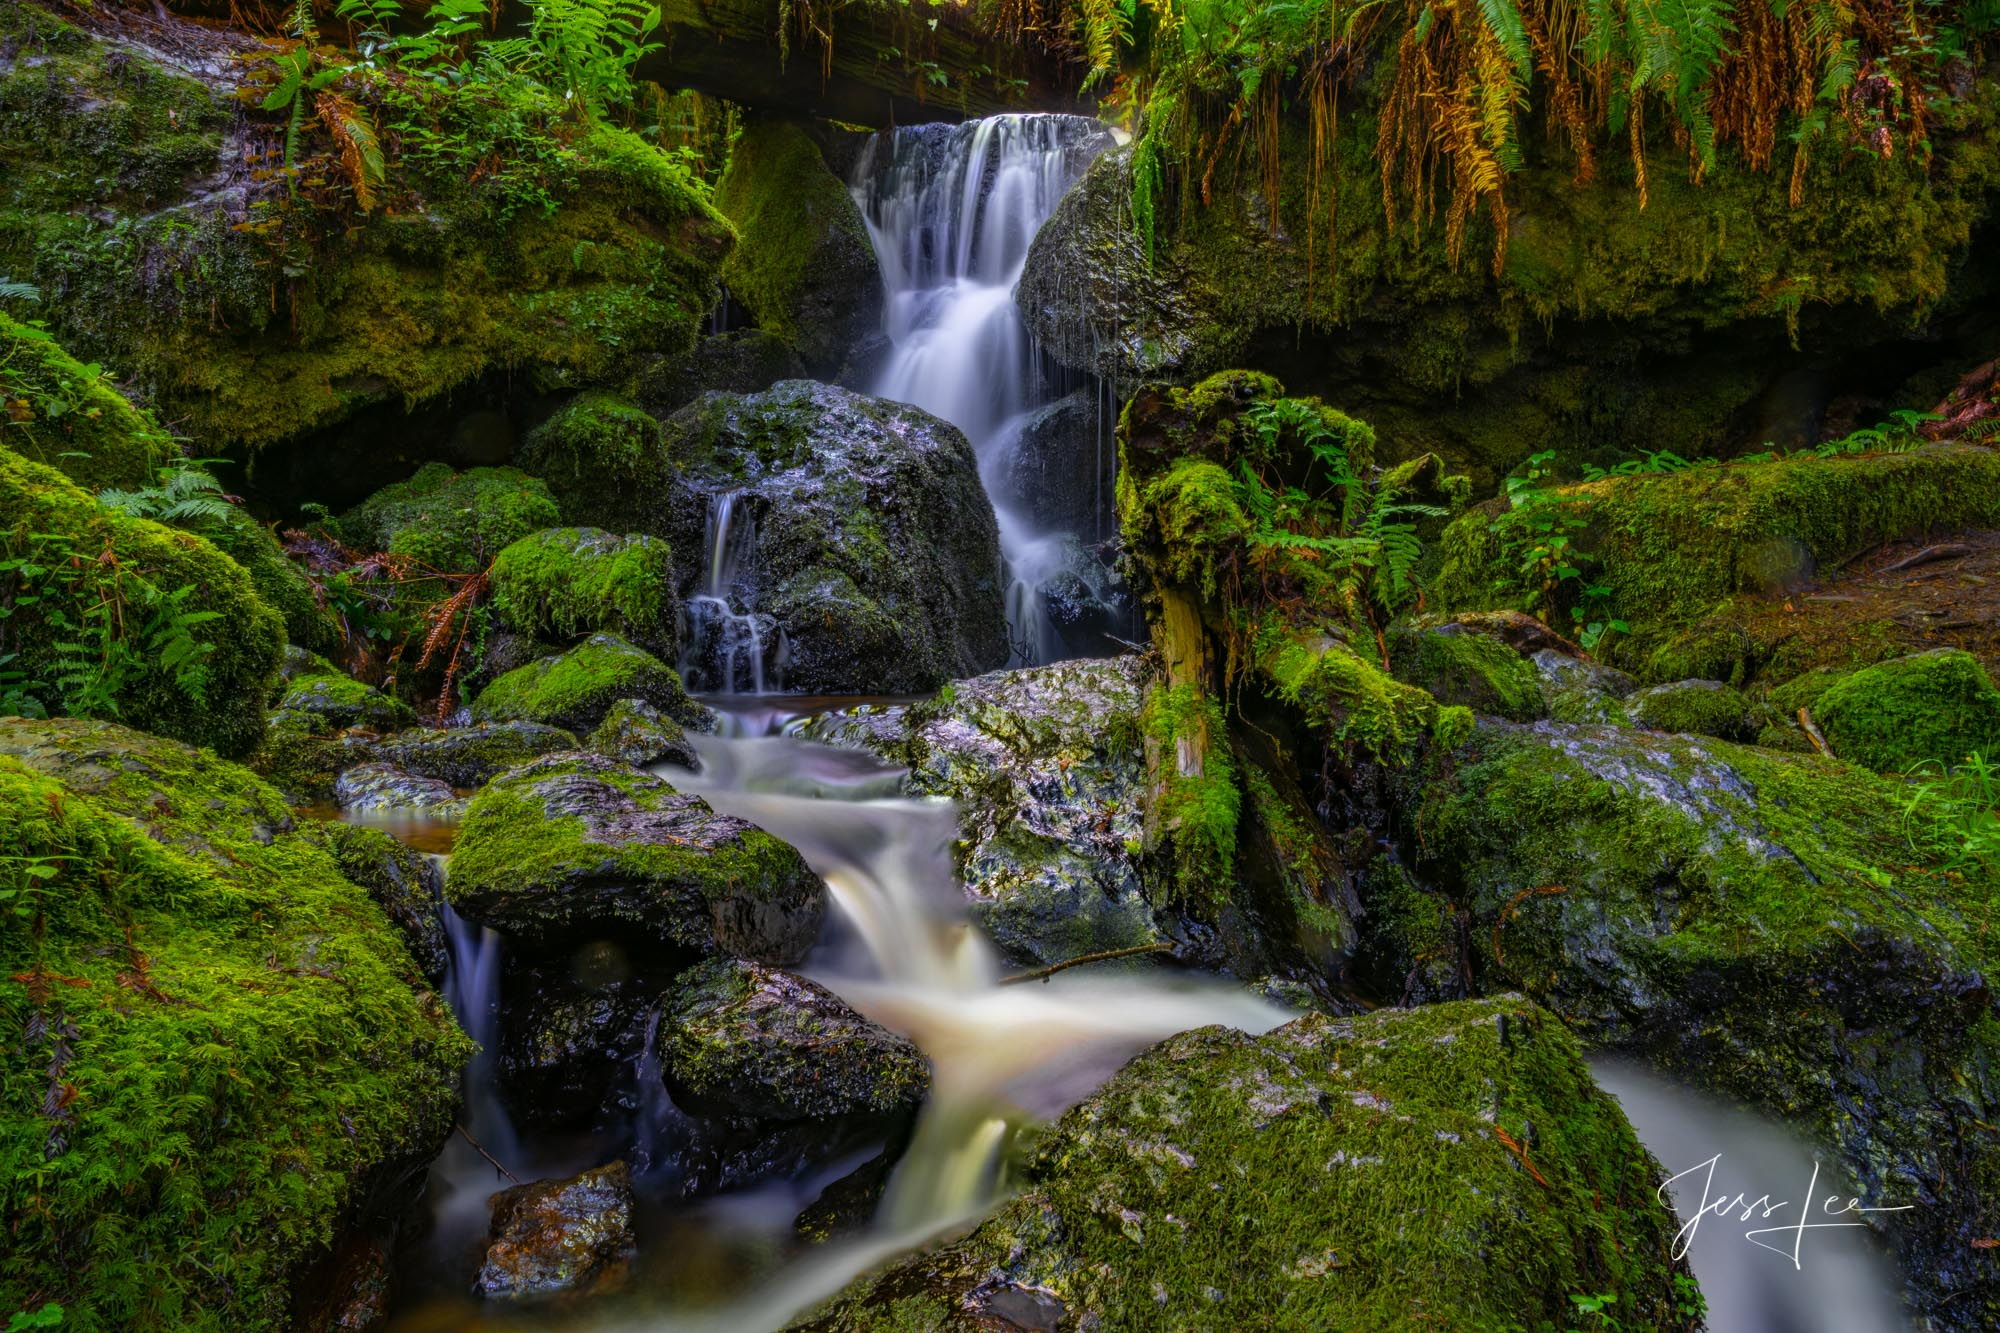 cowboy, western, waterfall, redwoods, california, photo